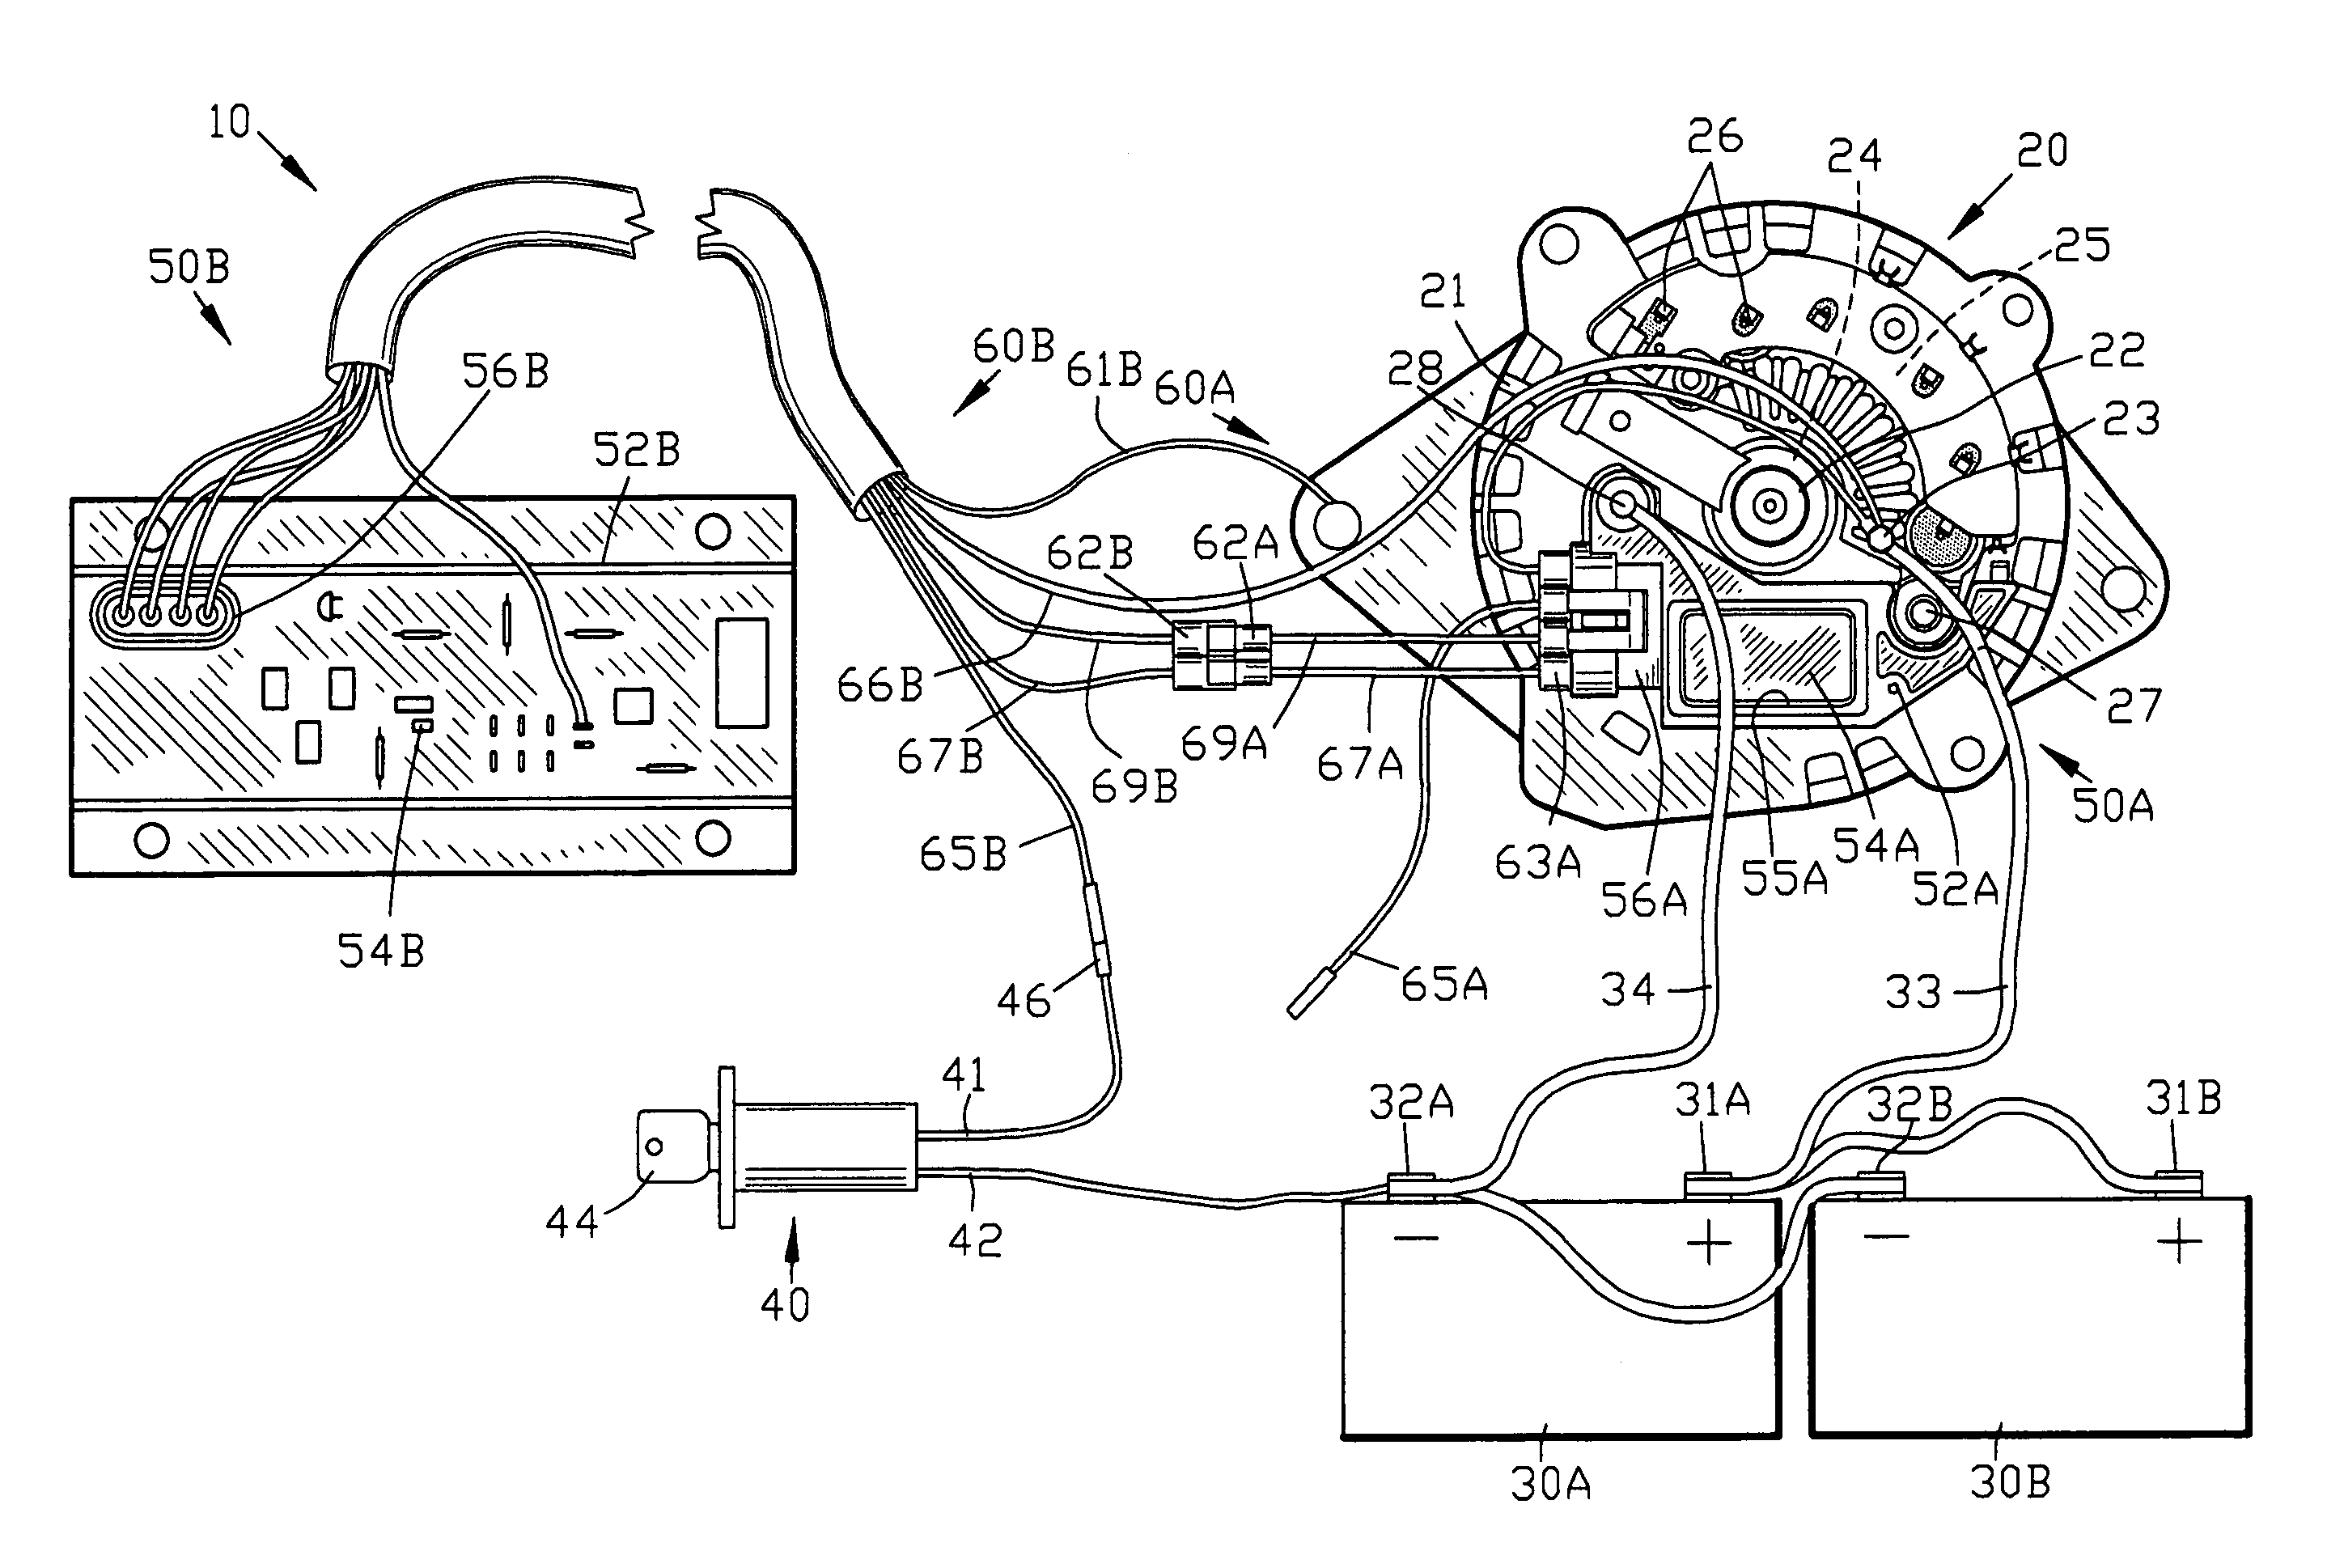 US07245111 20070717 D00000 patent us7245111 regulator system for alternator google patents valeo alternator regulator wiring diagram at reclaimingppi.co